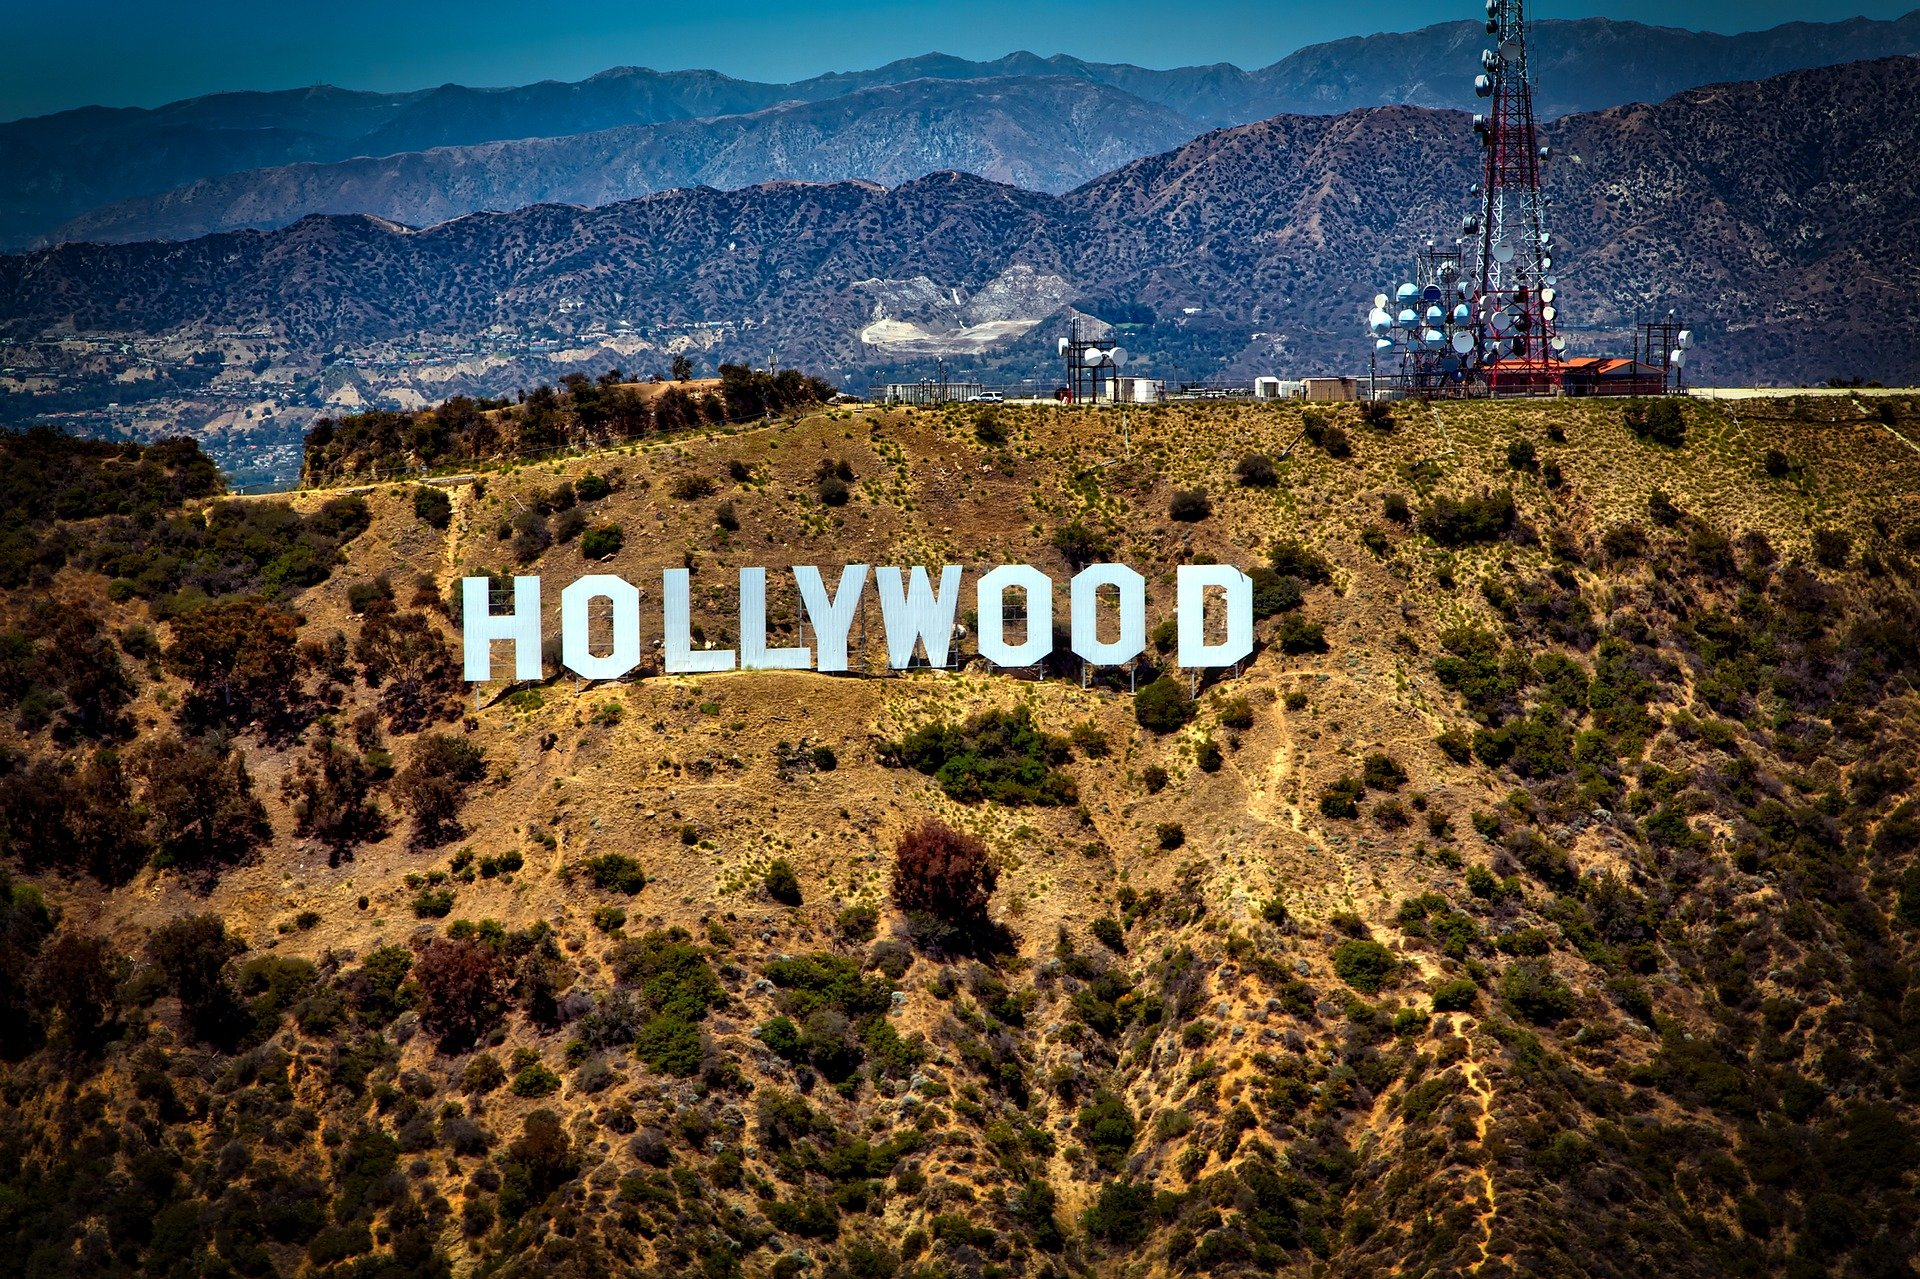 hollywood-sign-1598473_1920 (2)